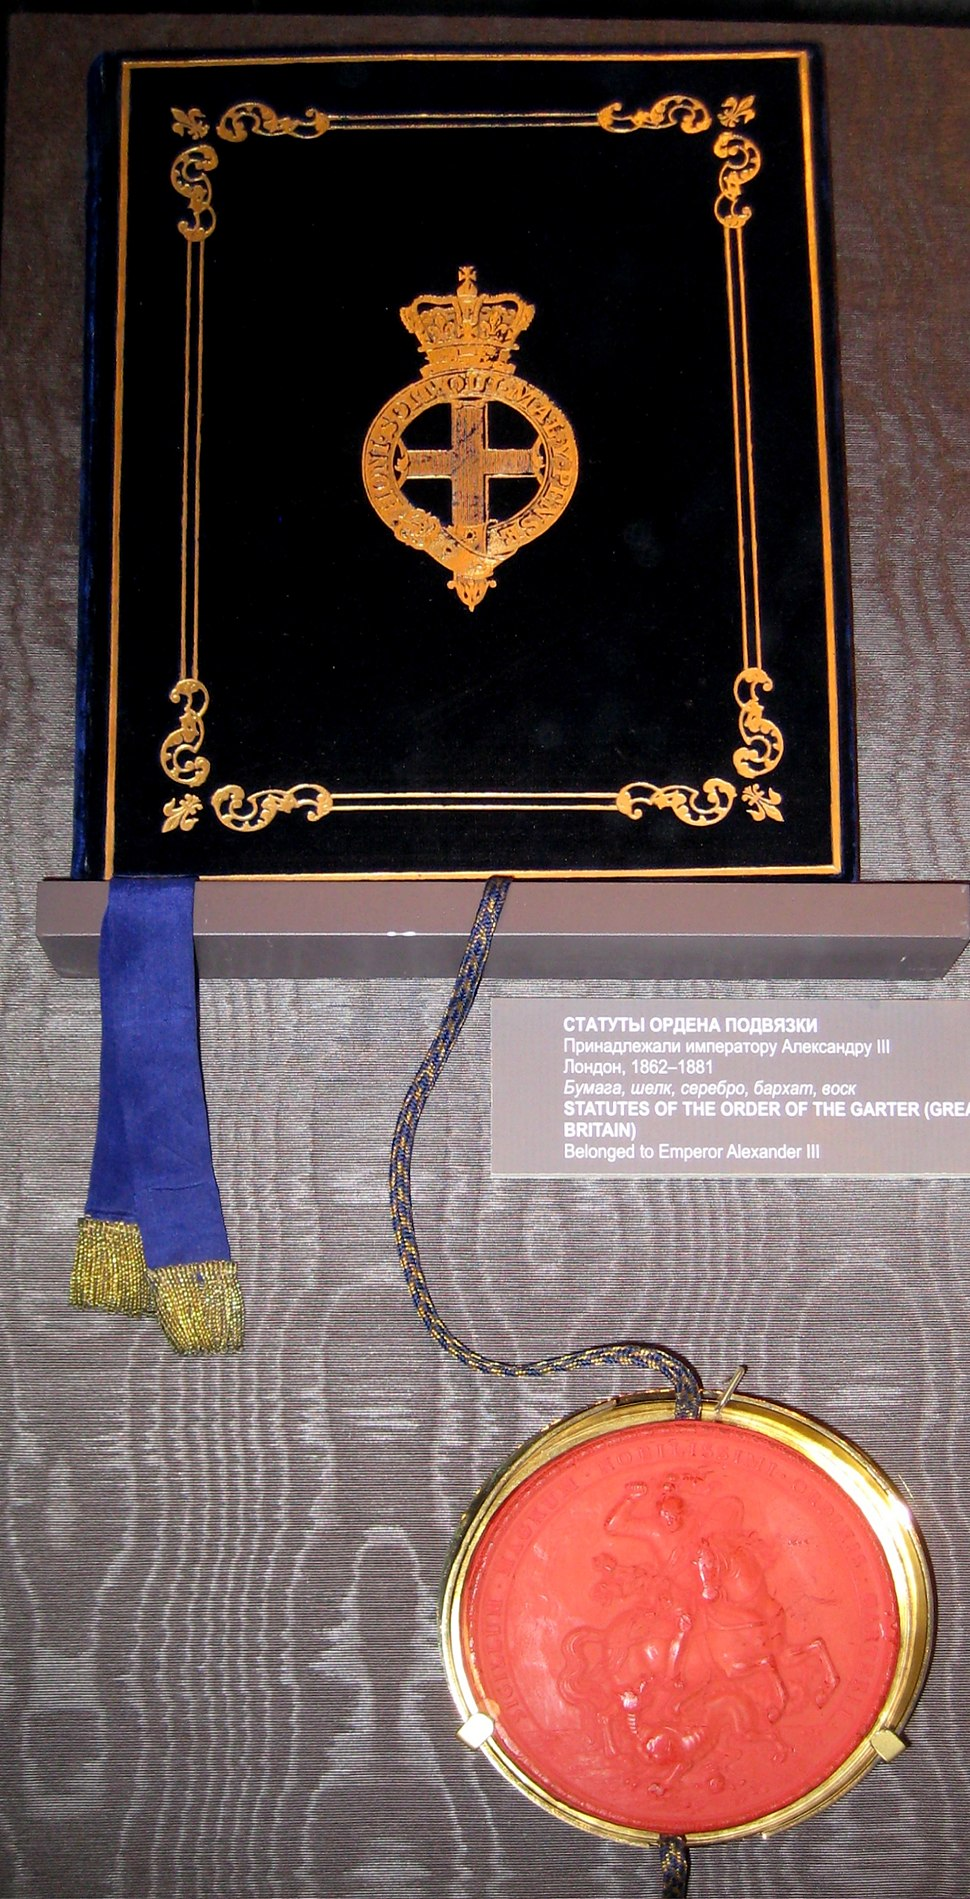 Statutes of the Order of the Garter (Alexander III of Russia)